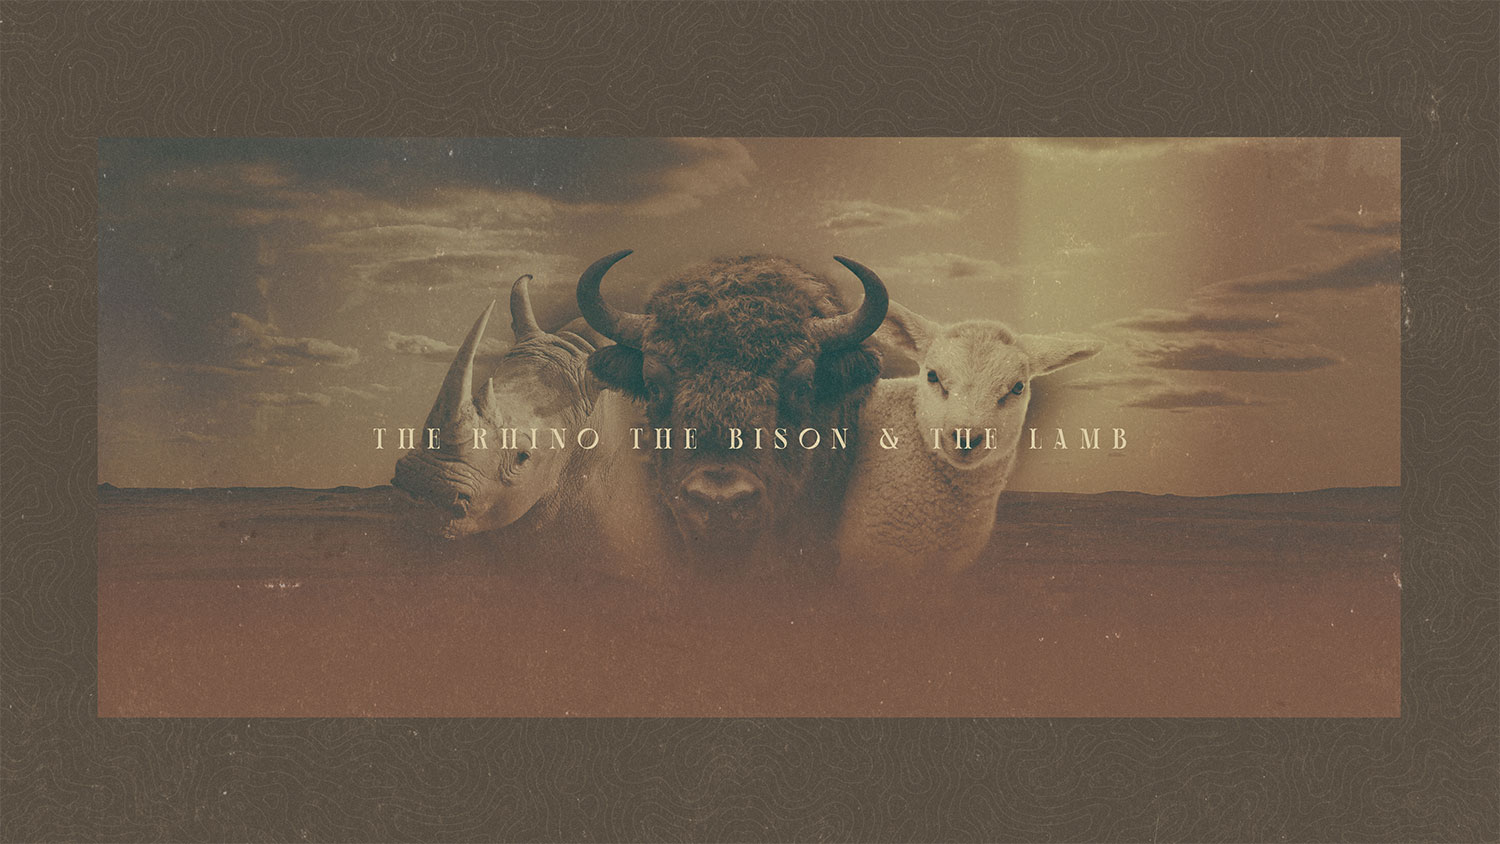 The Rhino, the Bison, and the Lamb